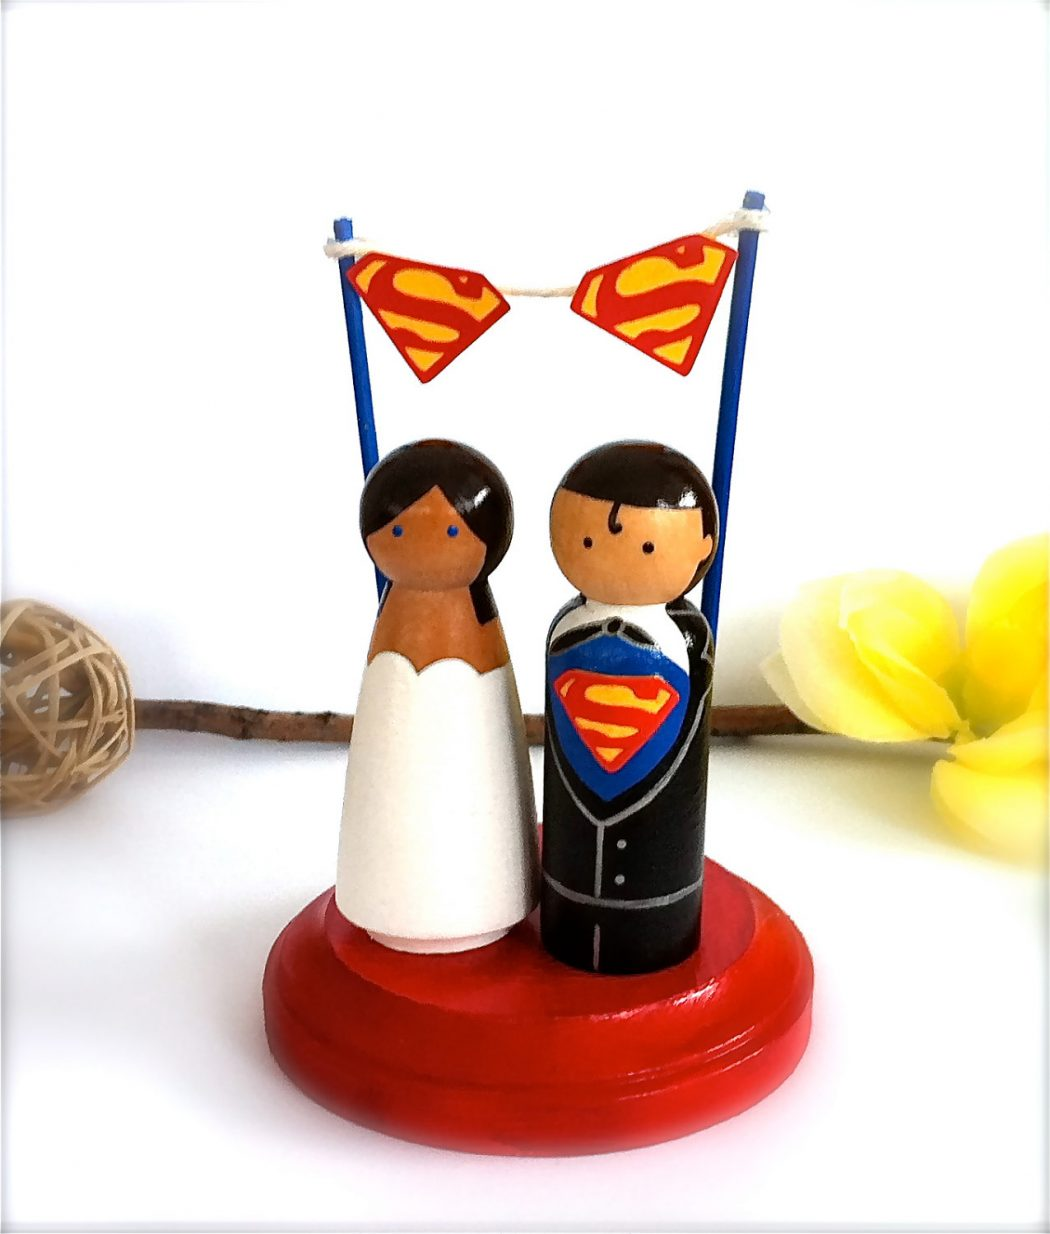 317564-superman-wedding-cake-topper-with-superman-by-creativebutterflyxox Top 10 Most Unique and Funny Wedding Cake Toppers 2019